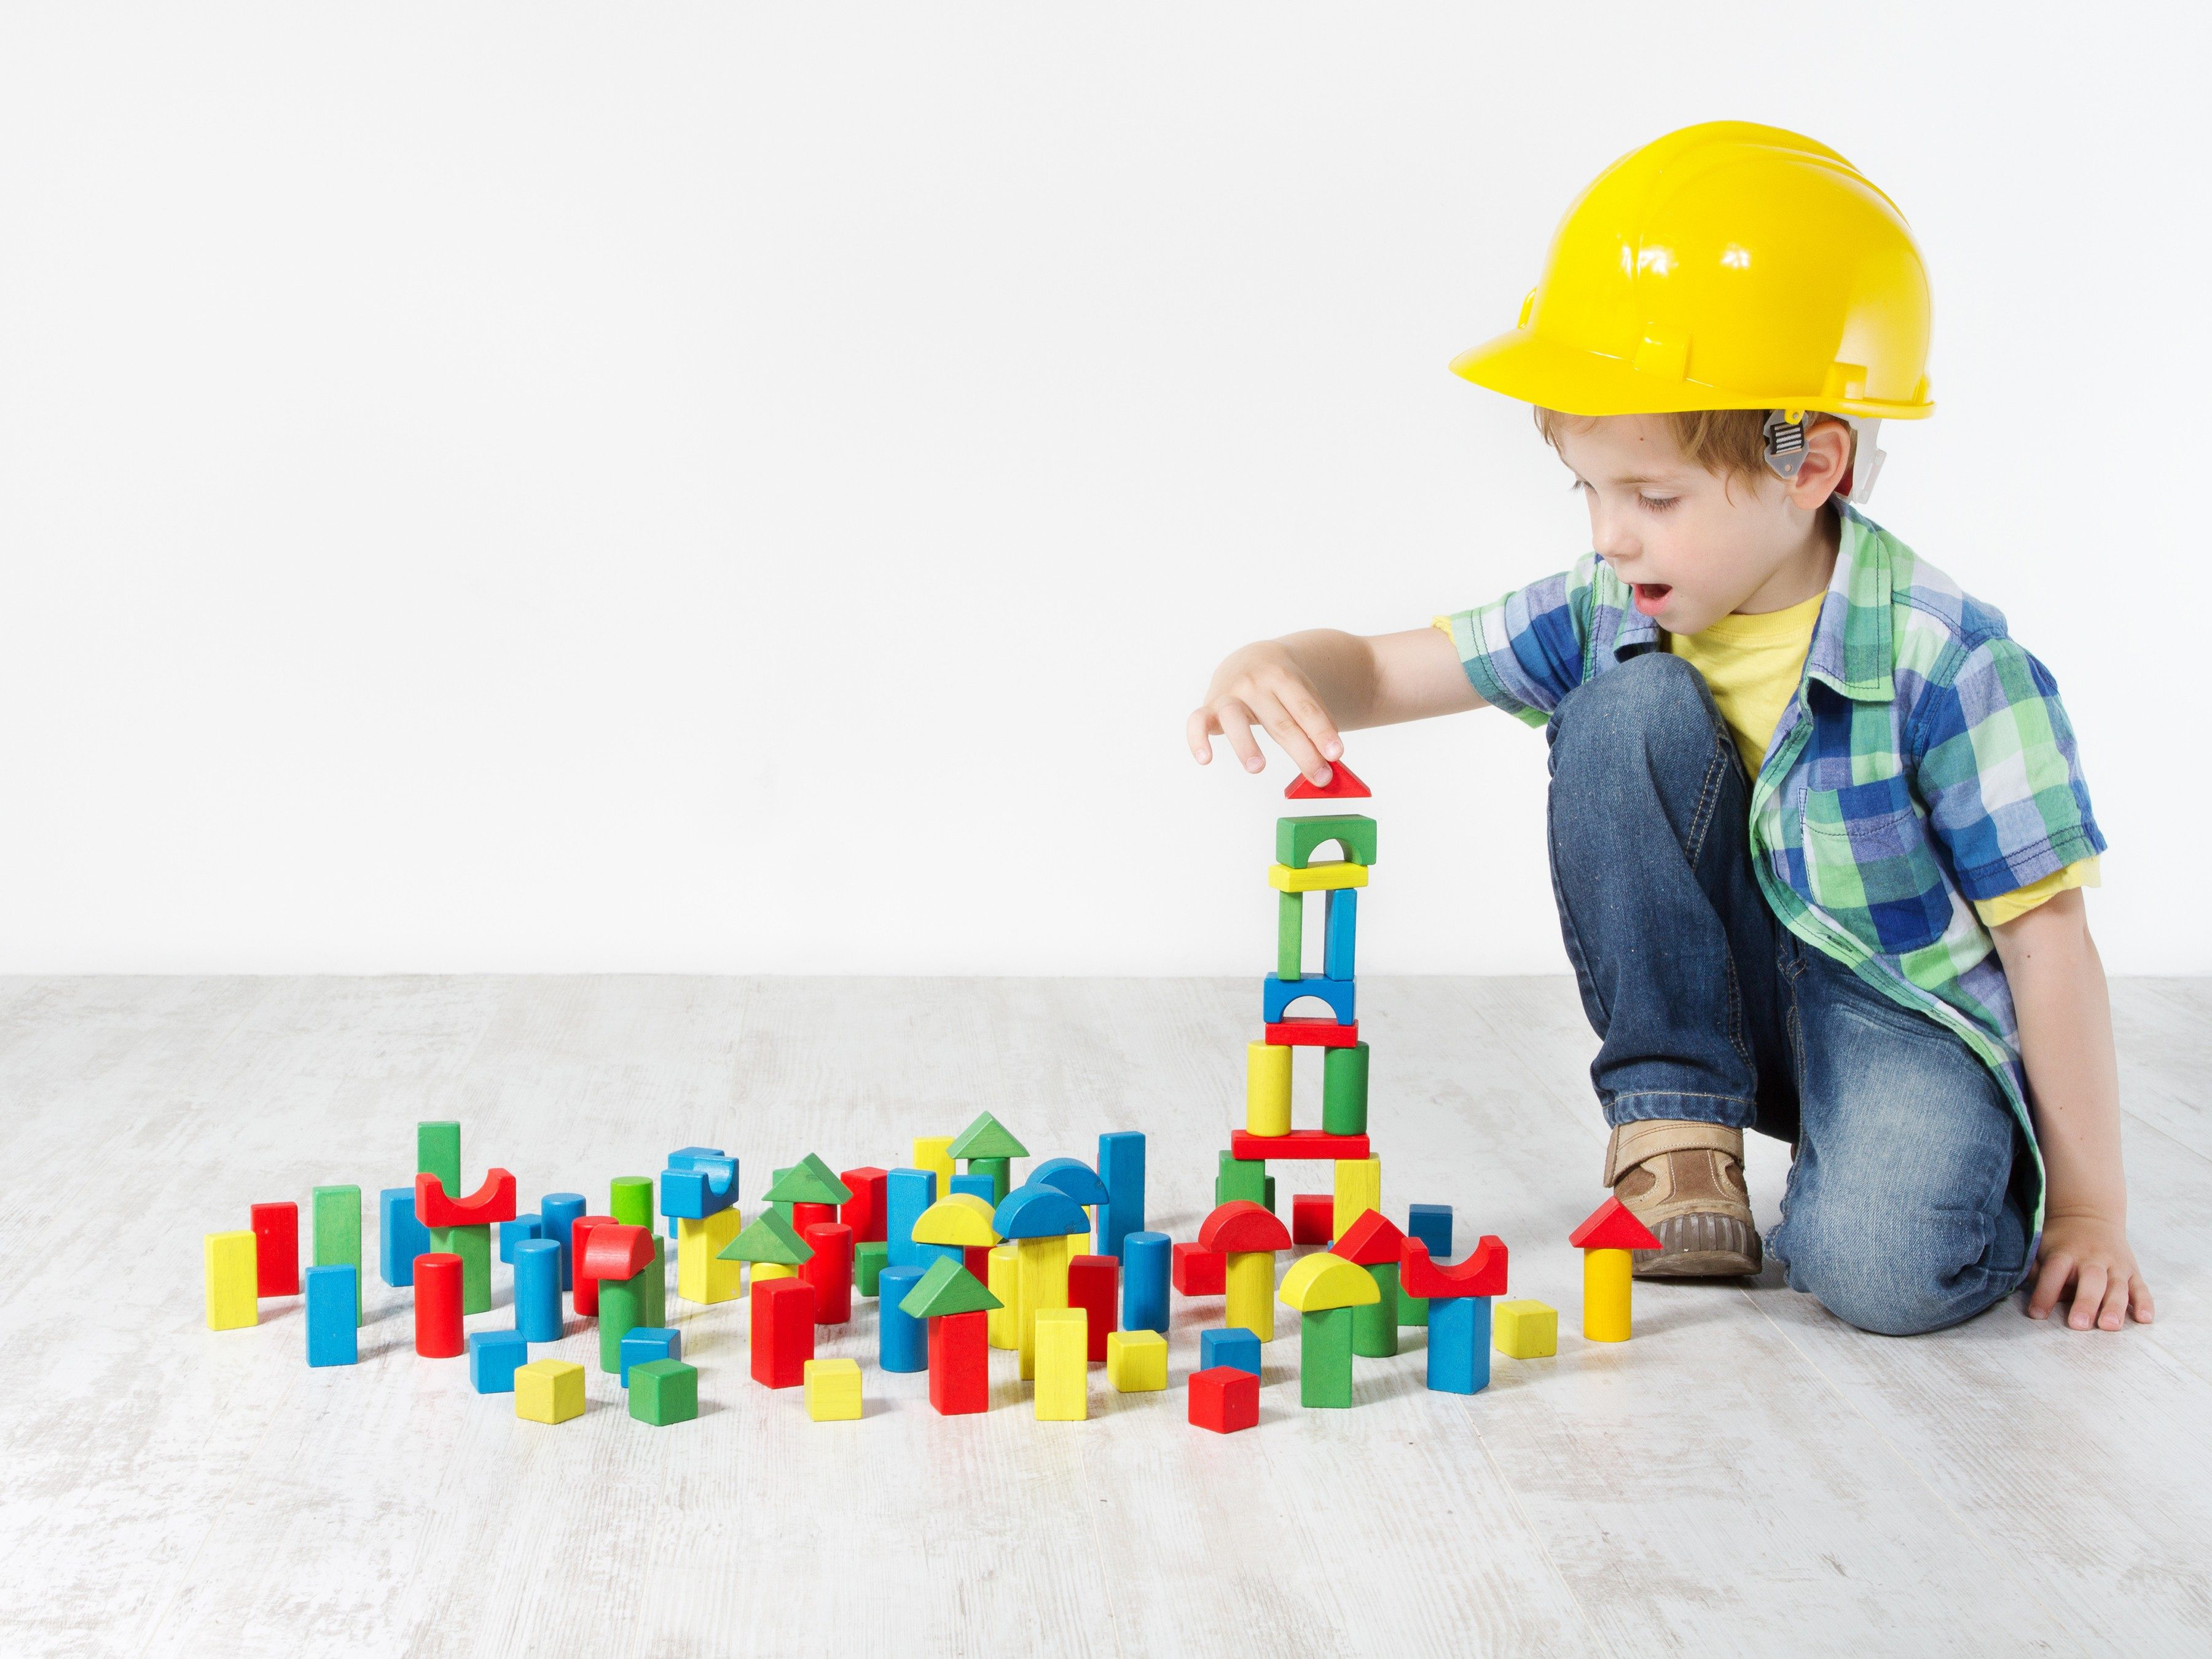 1. Free play helps kids build life skills